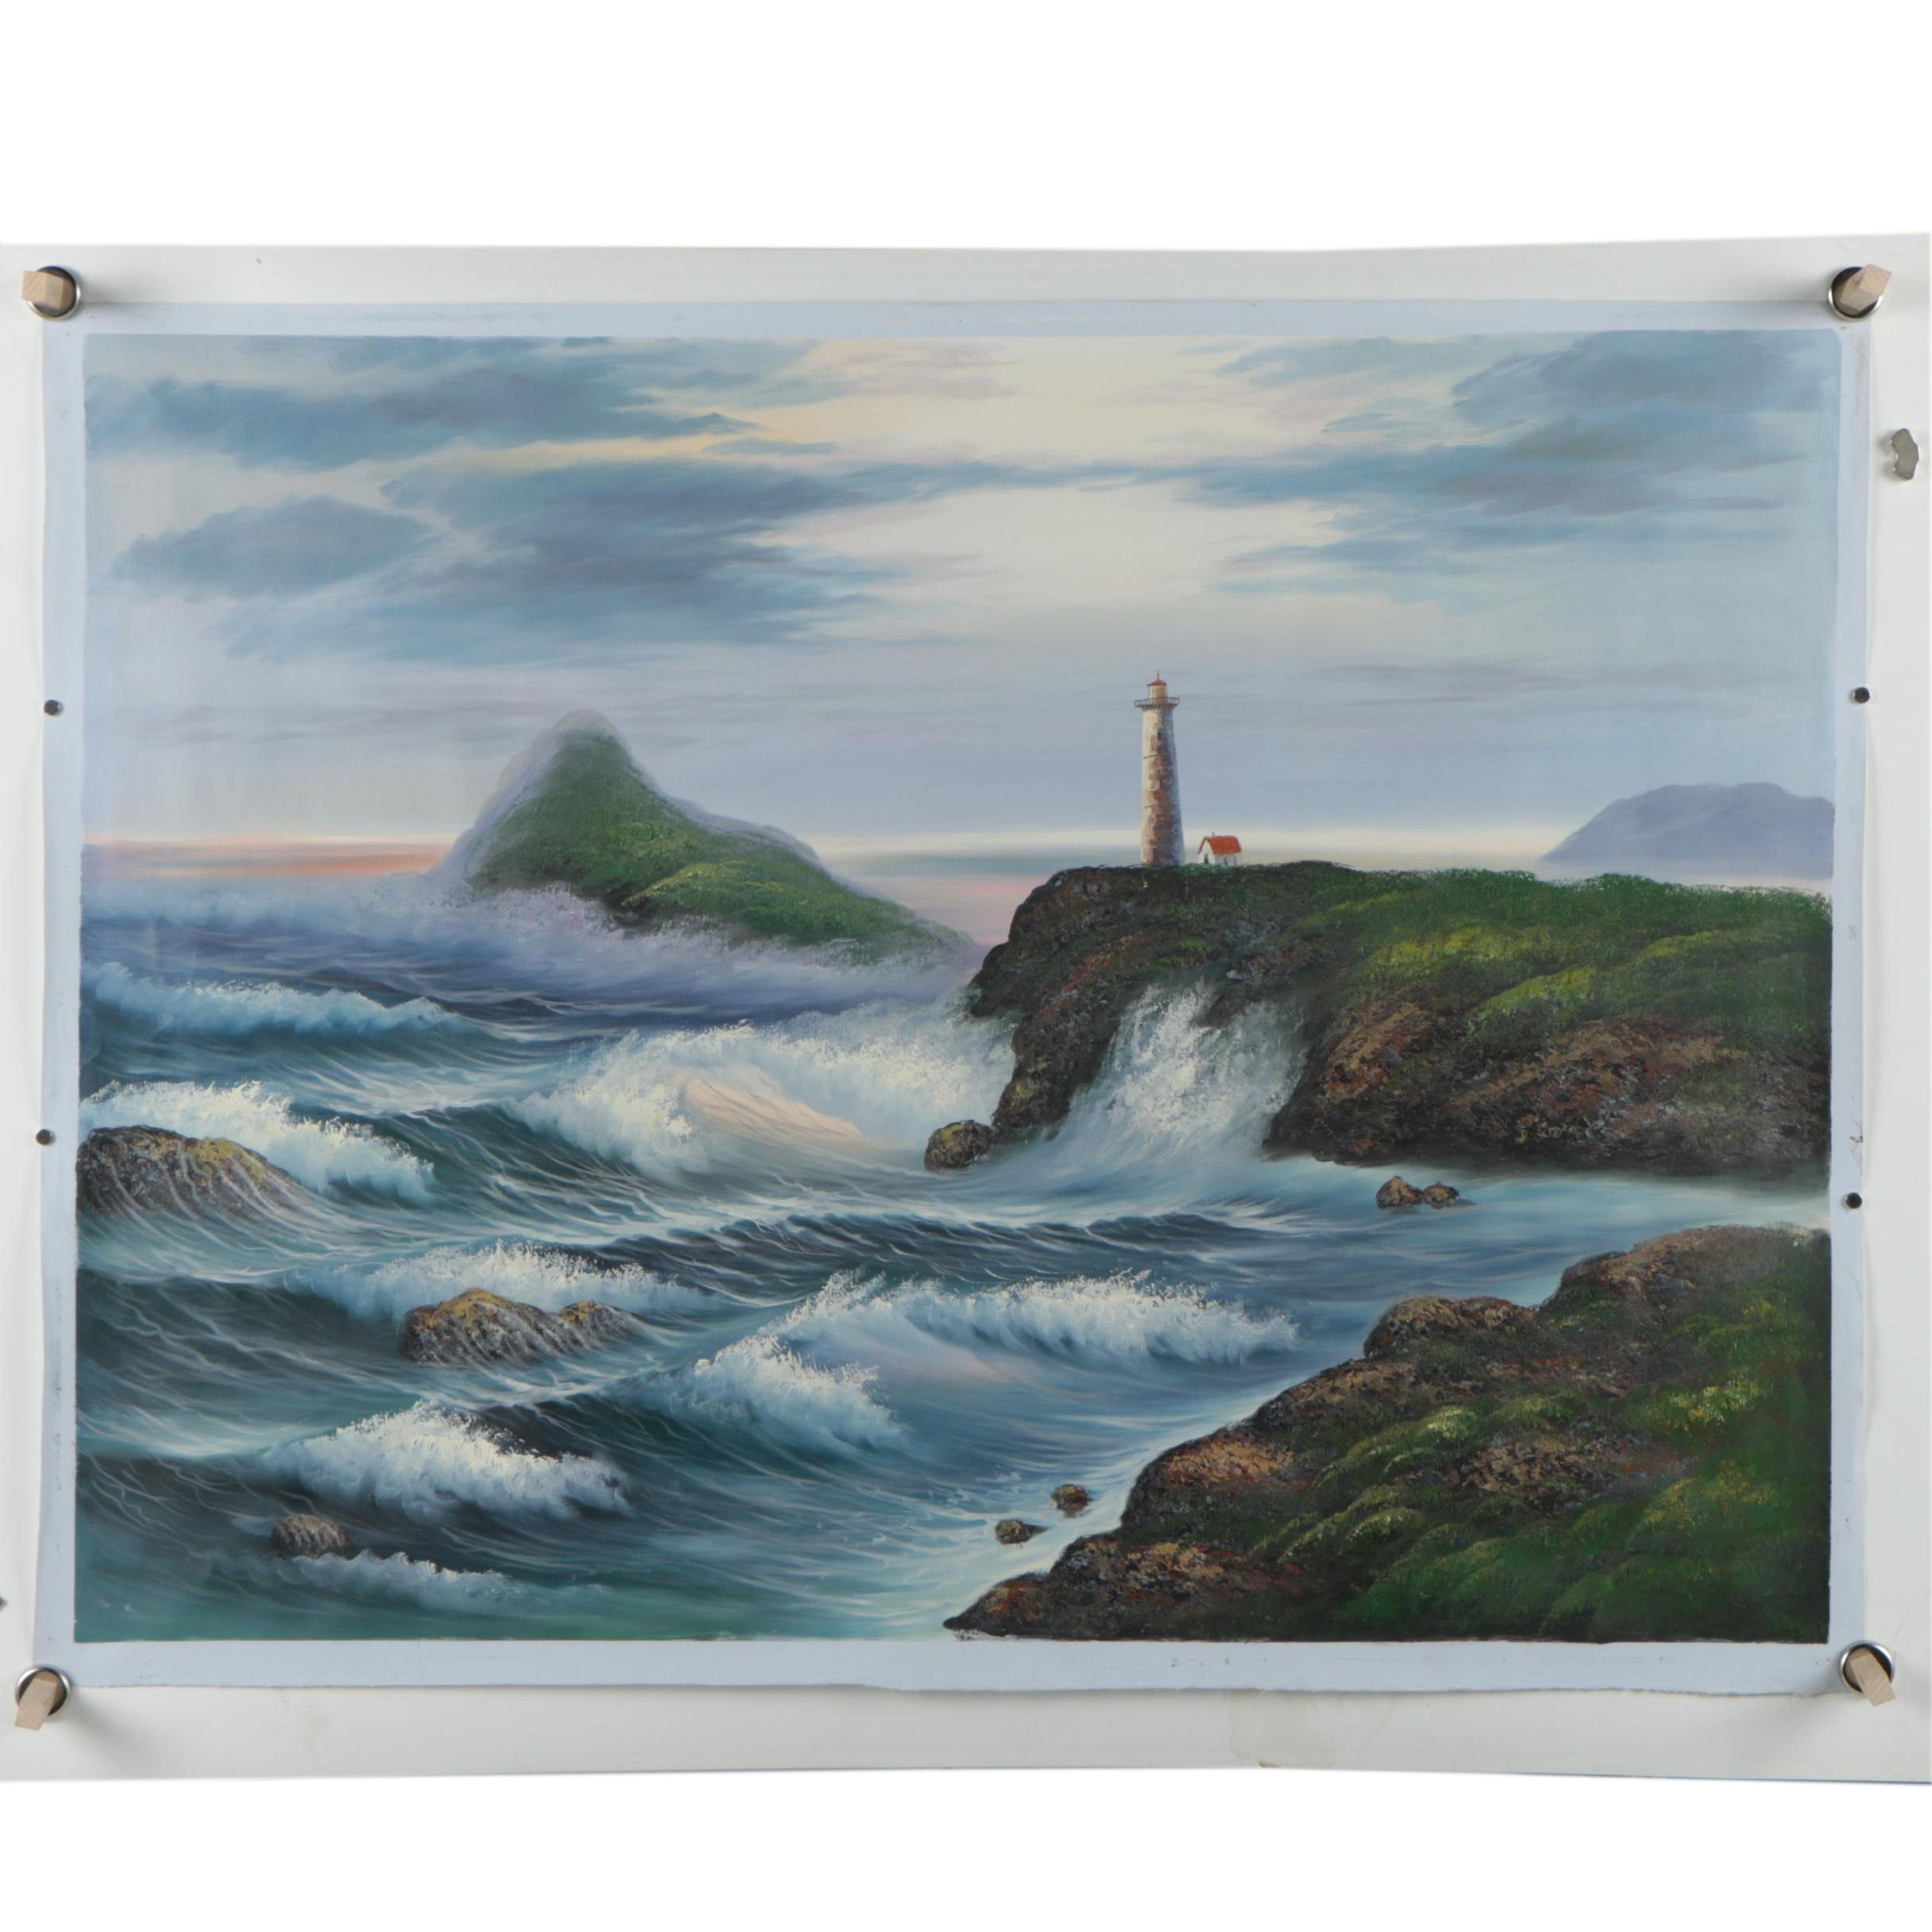 Oil on Canvas Landscape Painting of a Lighthouse